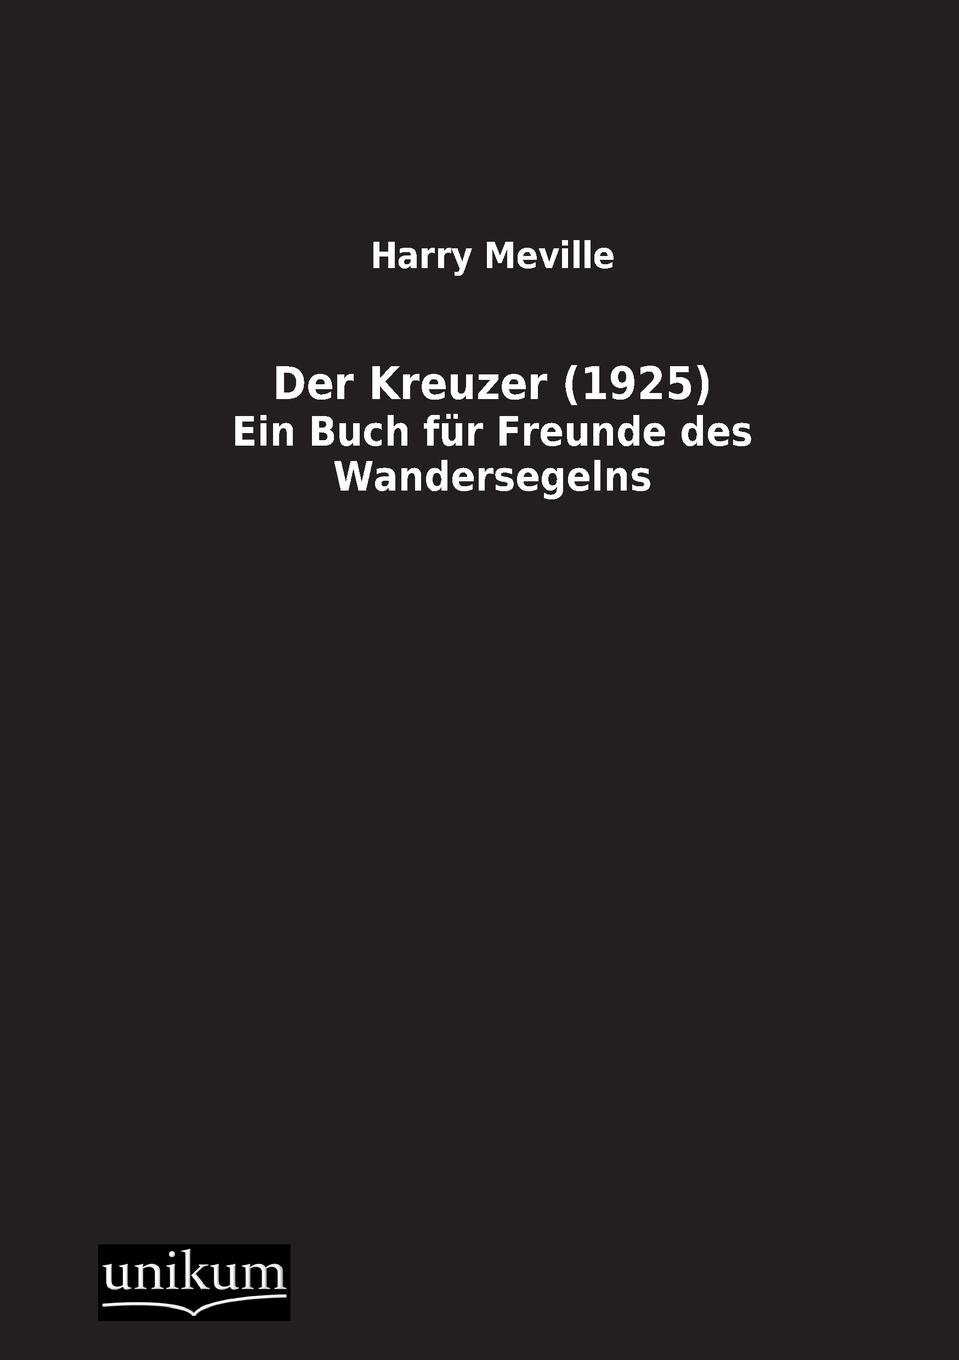 Harry Meville Der Kreuzer (1925)